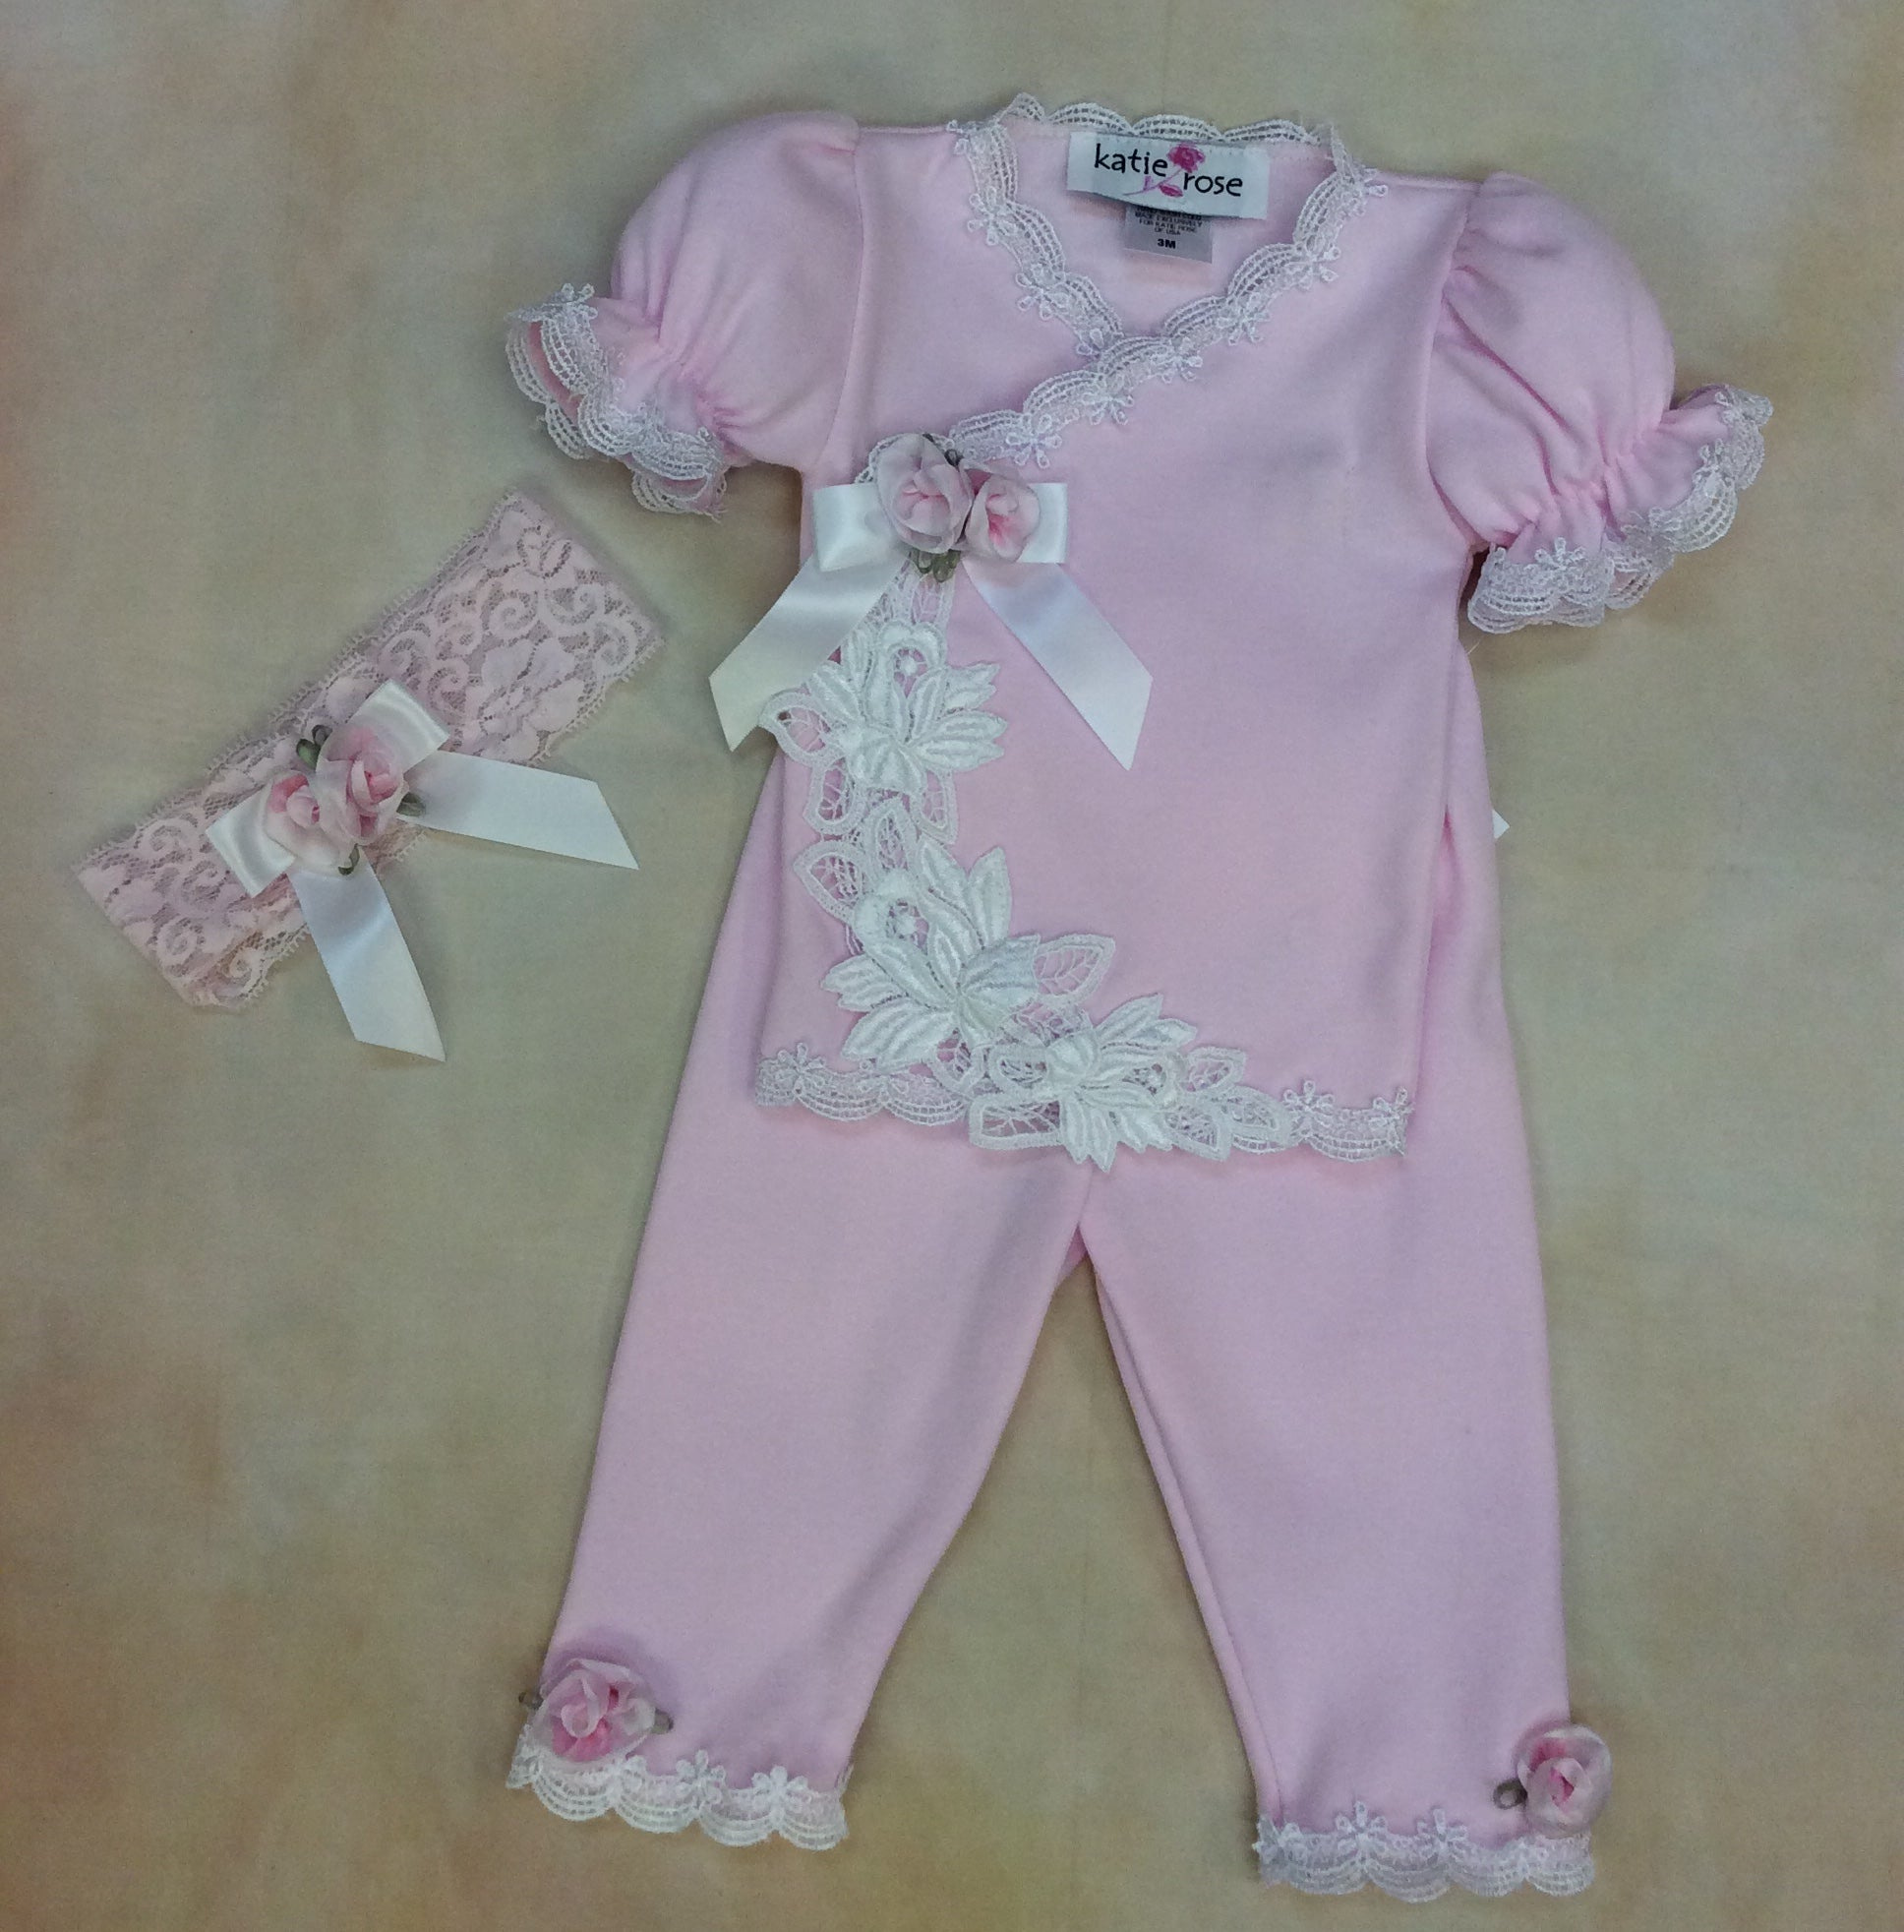 Katie Rose Maleia - Nenes Lullaby Boutique Inc